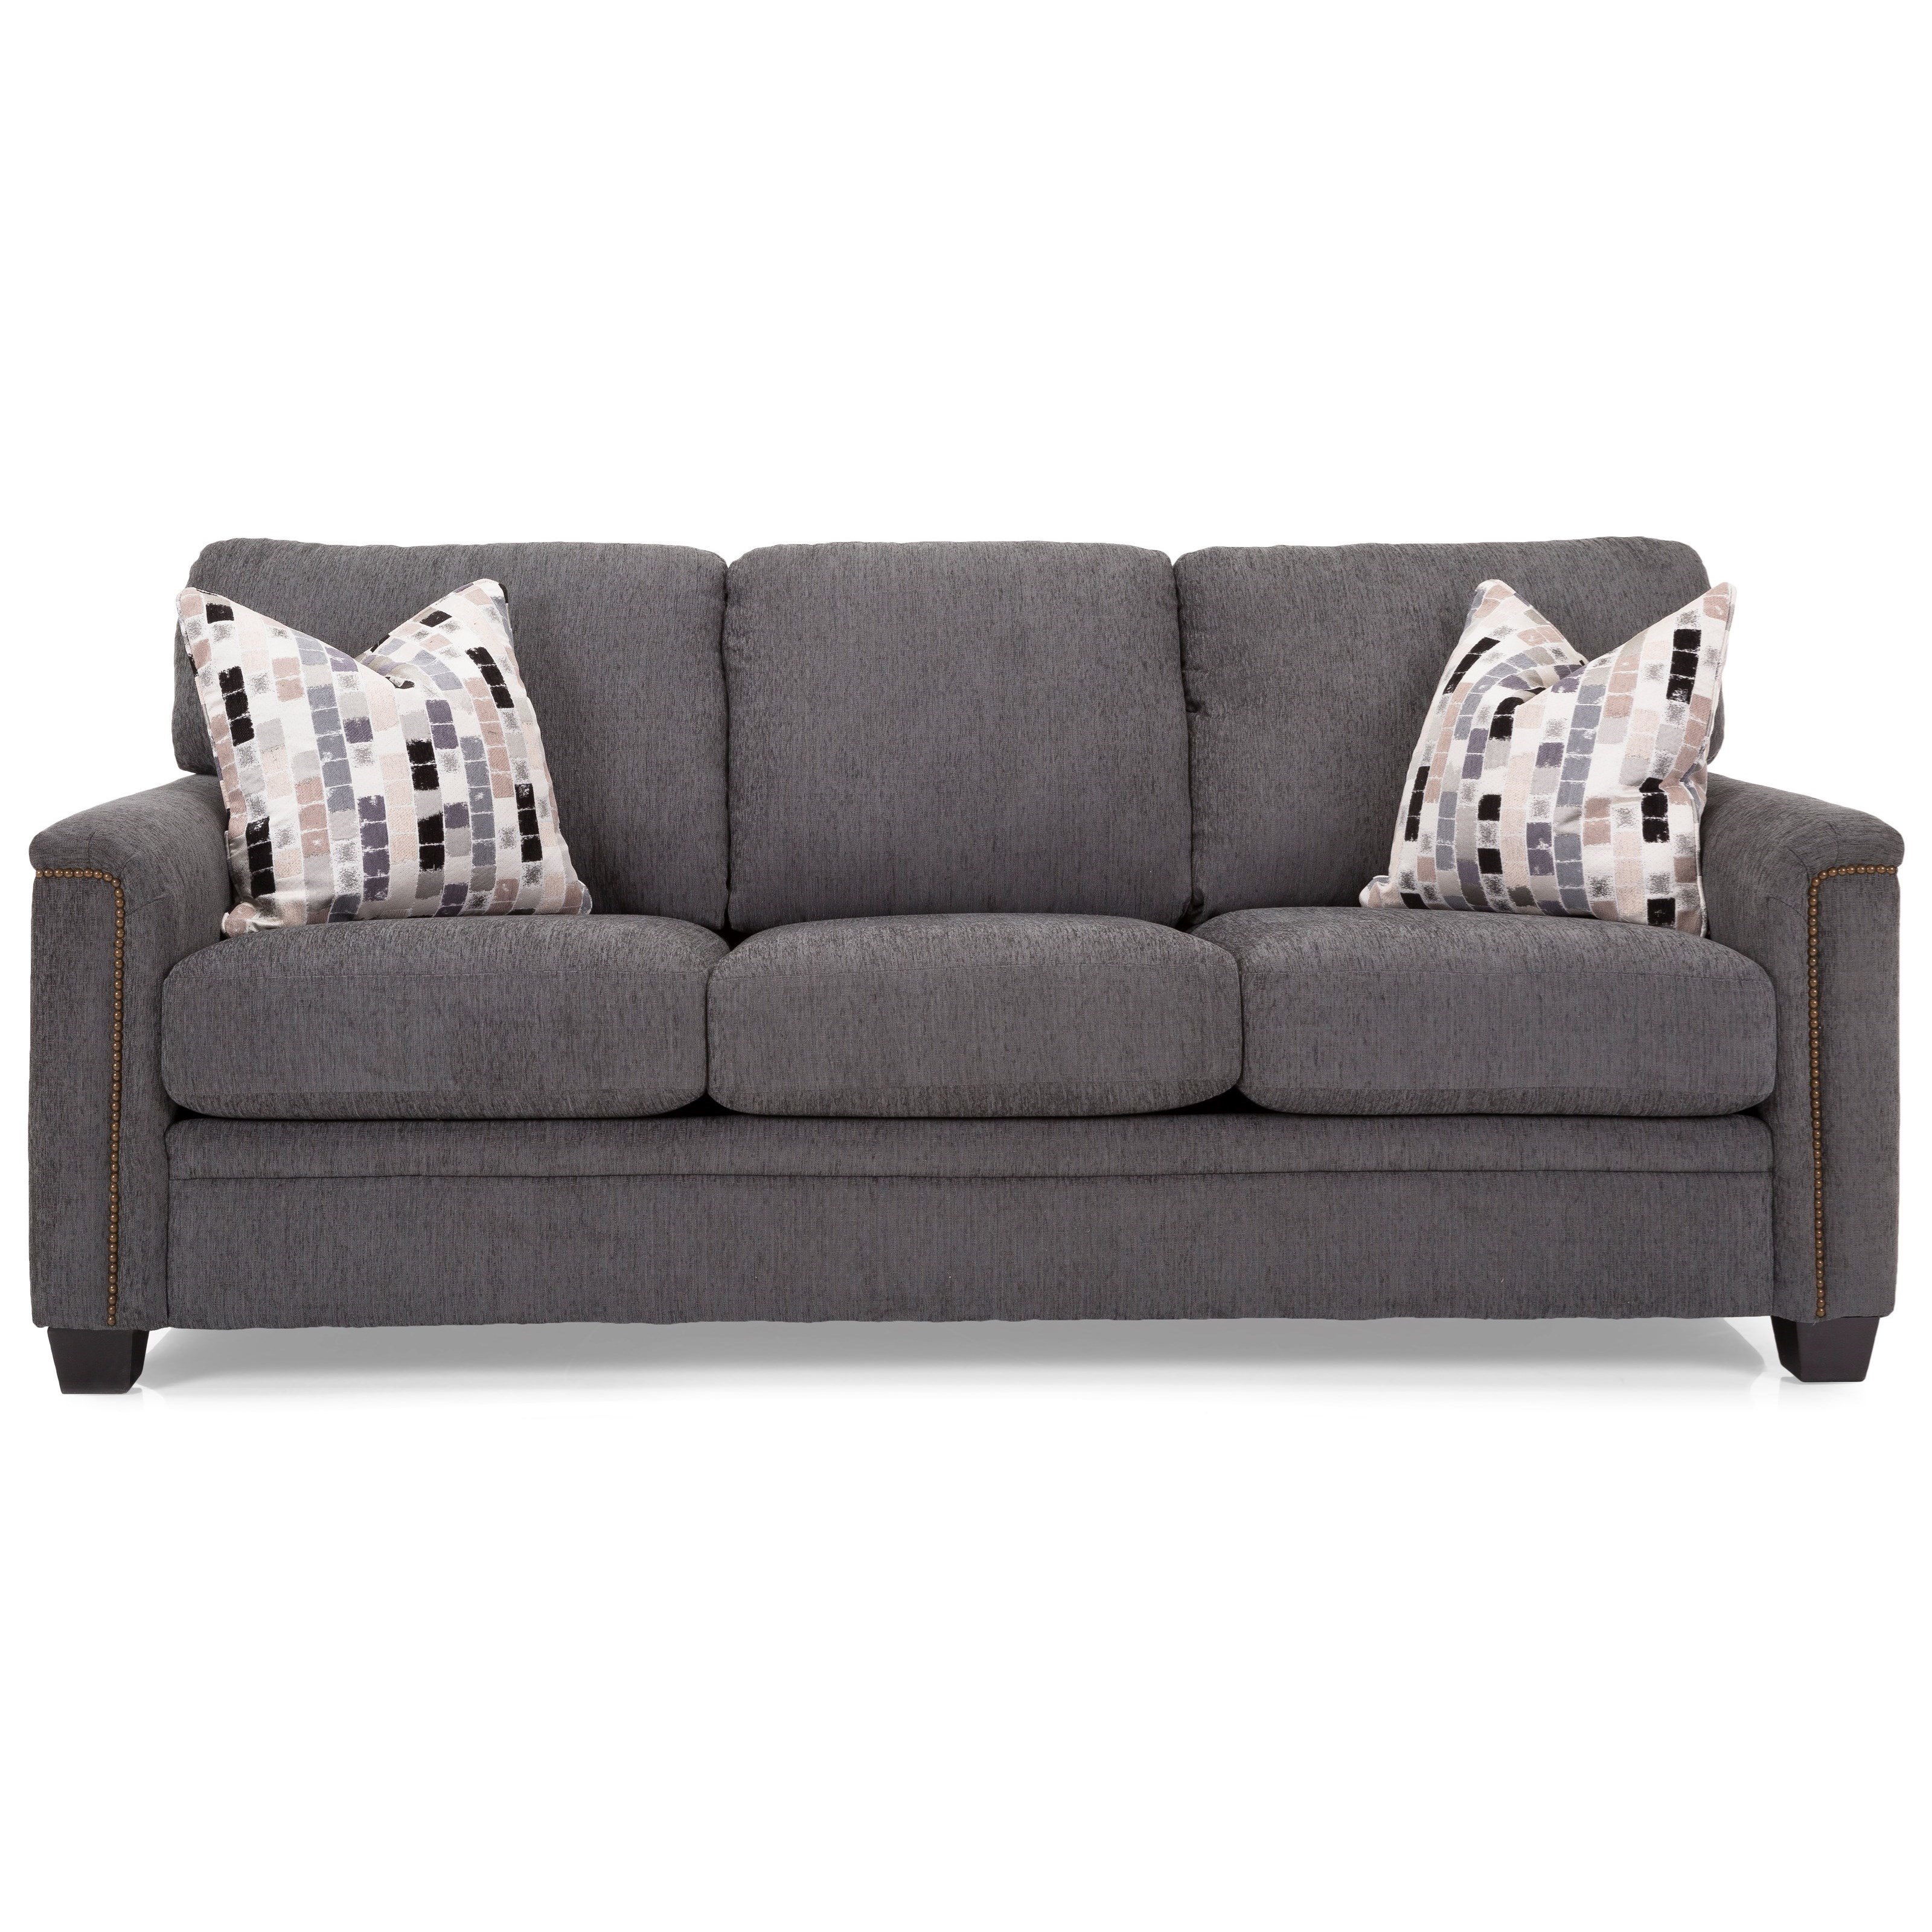 2877 Sofa by Decor-Rest at Stoney Creek Furniture